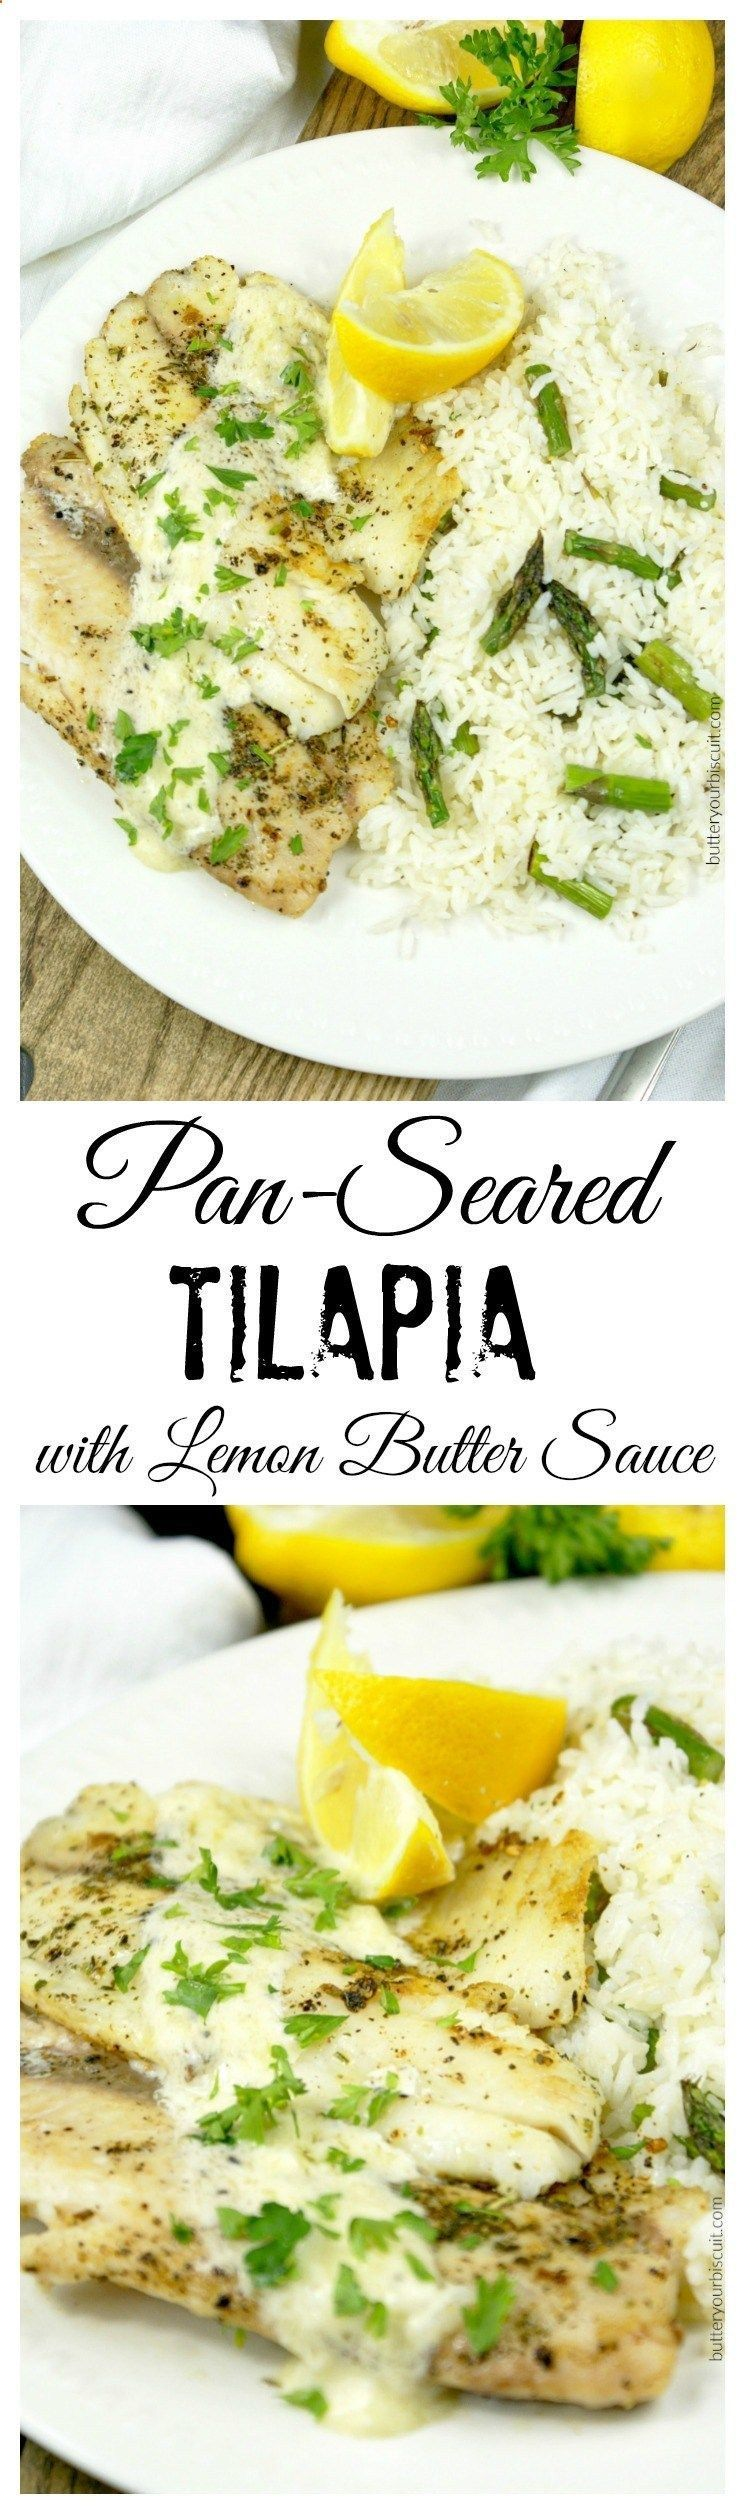 Photo of This Pan-seared Tilapia with Lemon Butter Sauce recipe is full of flavor. Ready …